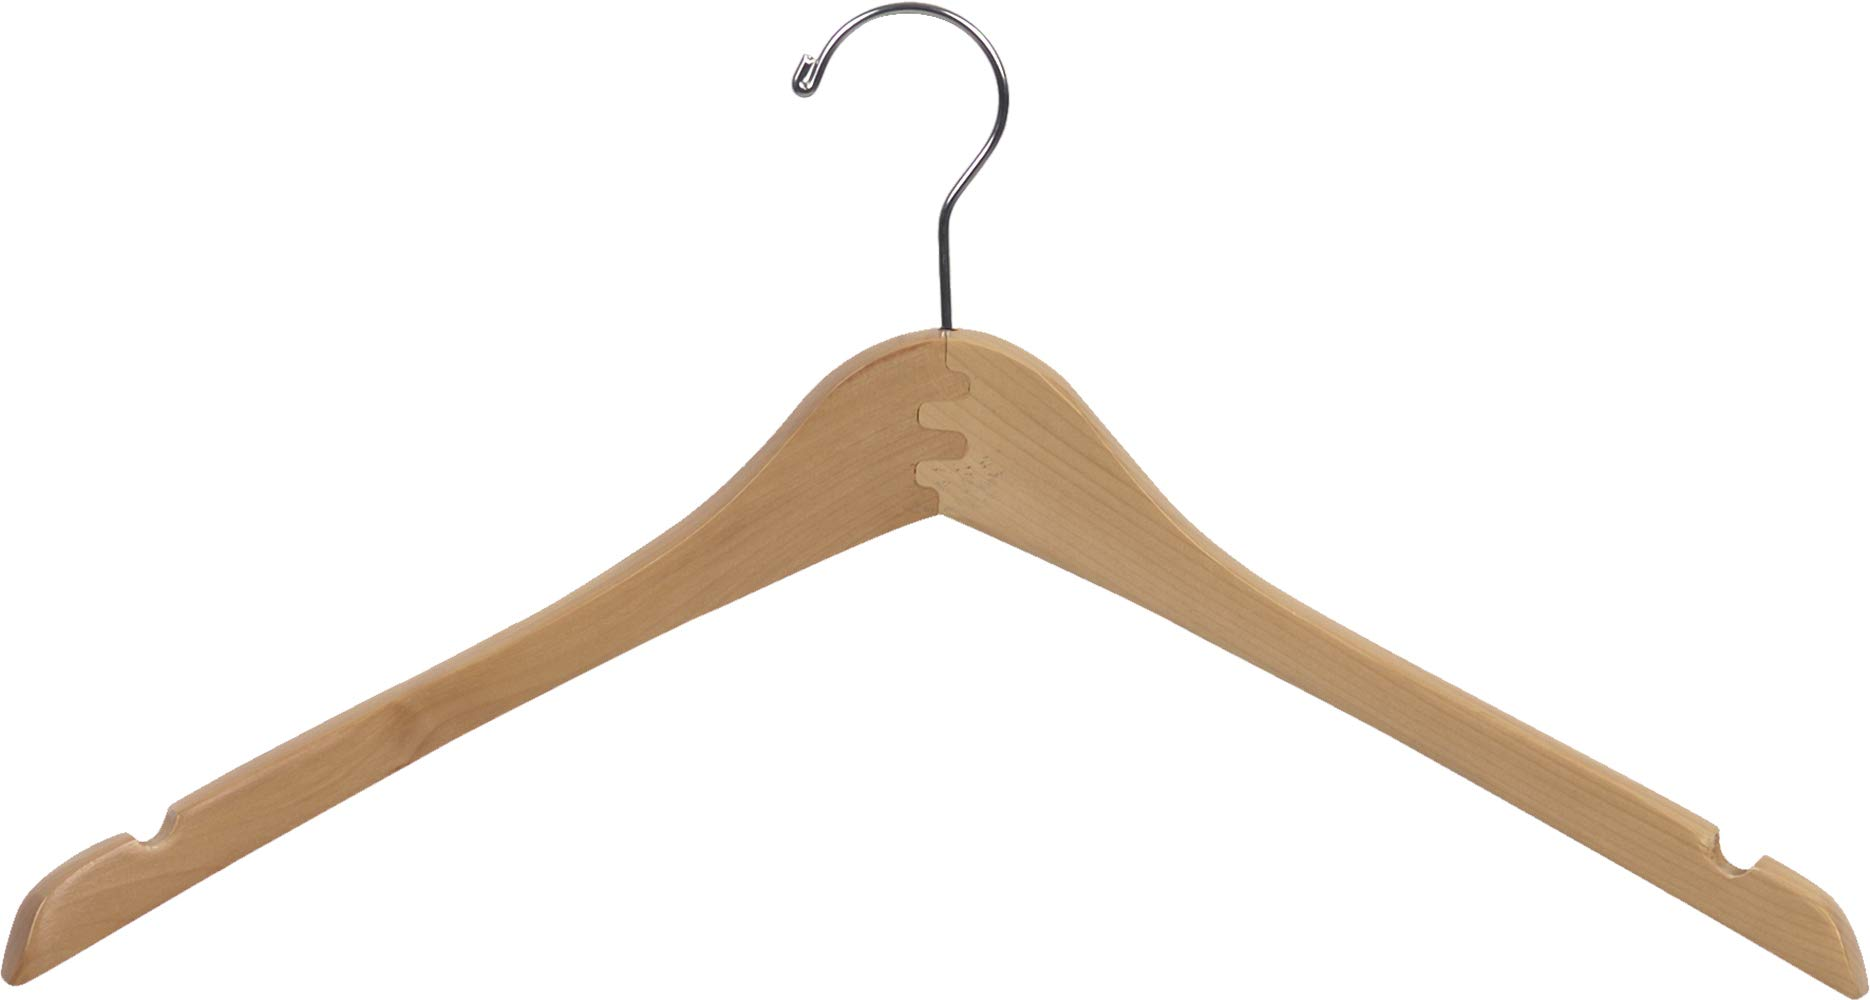 The Great American Hanger Company Curved Wood Top Hanger, Box of 100 17 Inch Wooden Hangers w/Natural Finish & Chrome Swivel Hook & Notches for Shirt Jacket or Coat